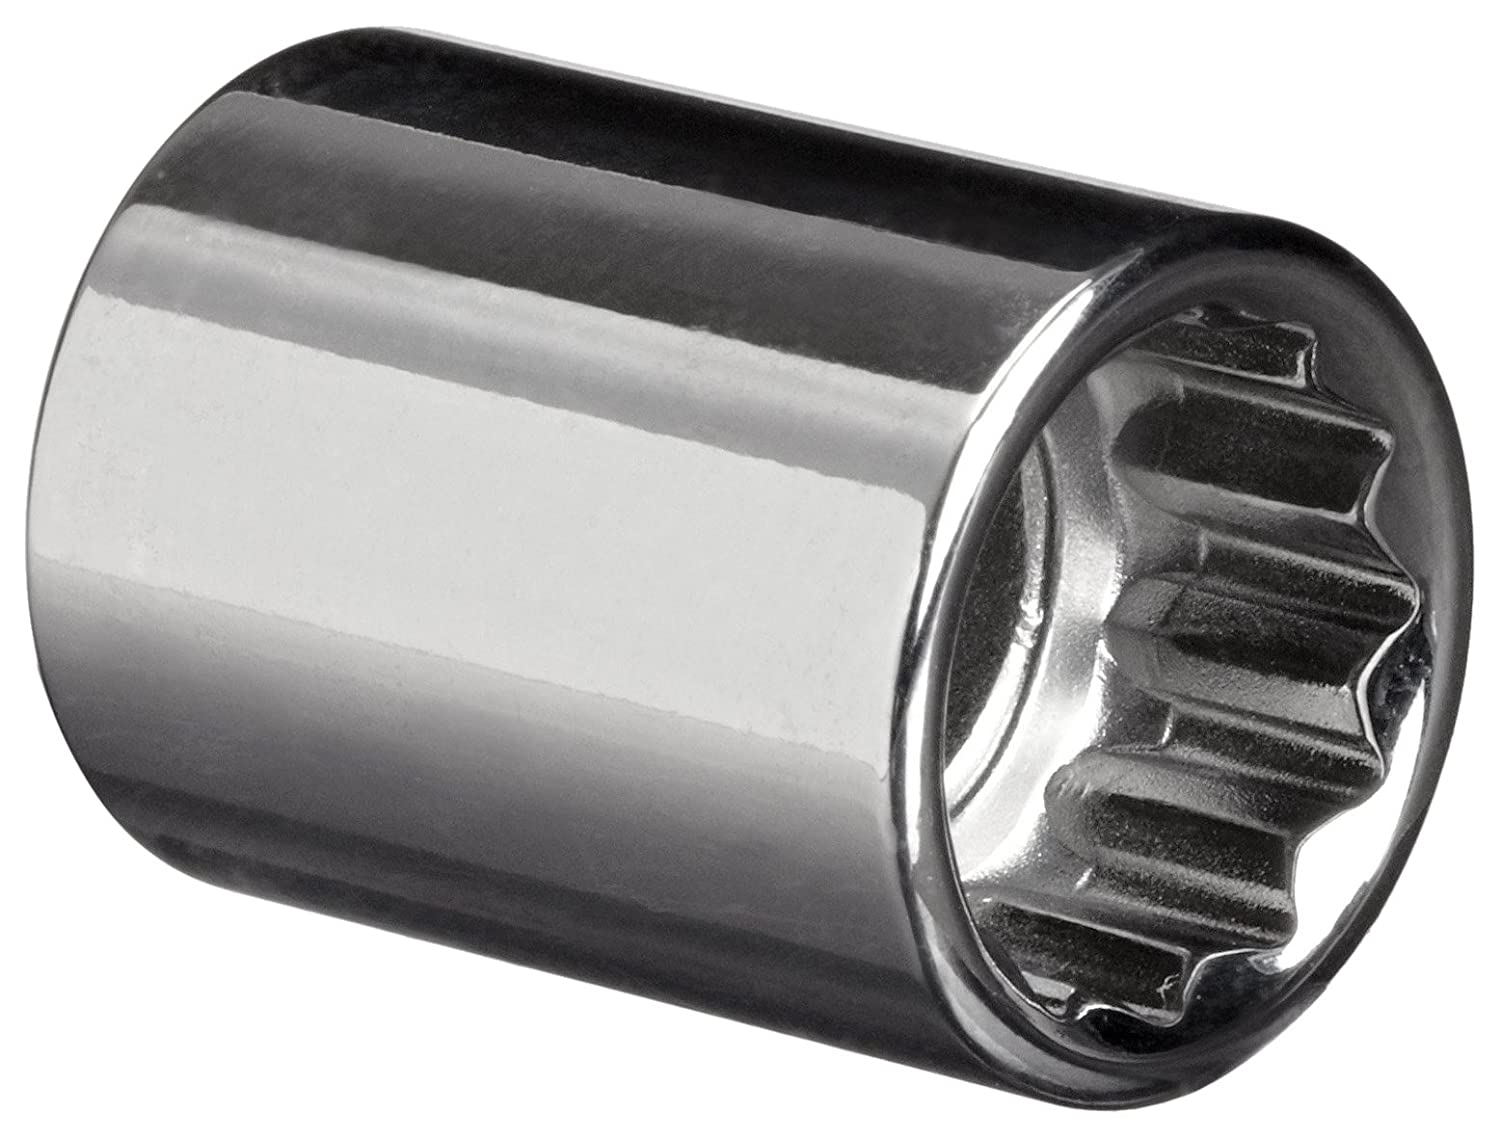 Chrome Finish 12 Points Standard Martin B1216 1//2 Type II Opening 3//8 Square Drive Socket 1-1//8 Overall Length